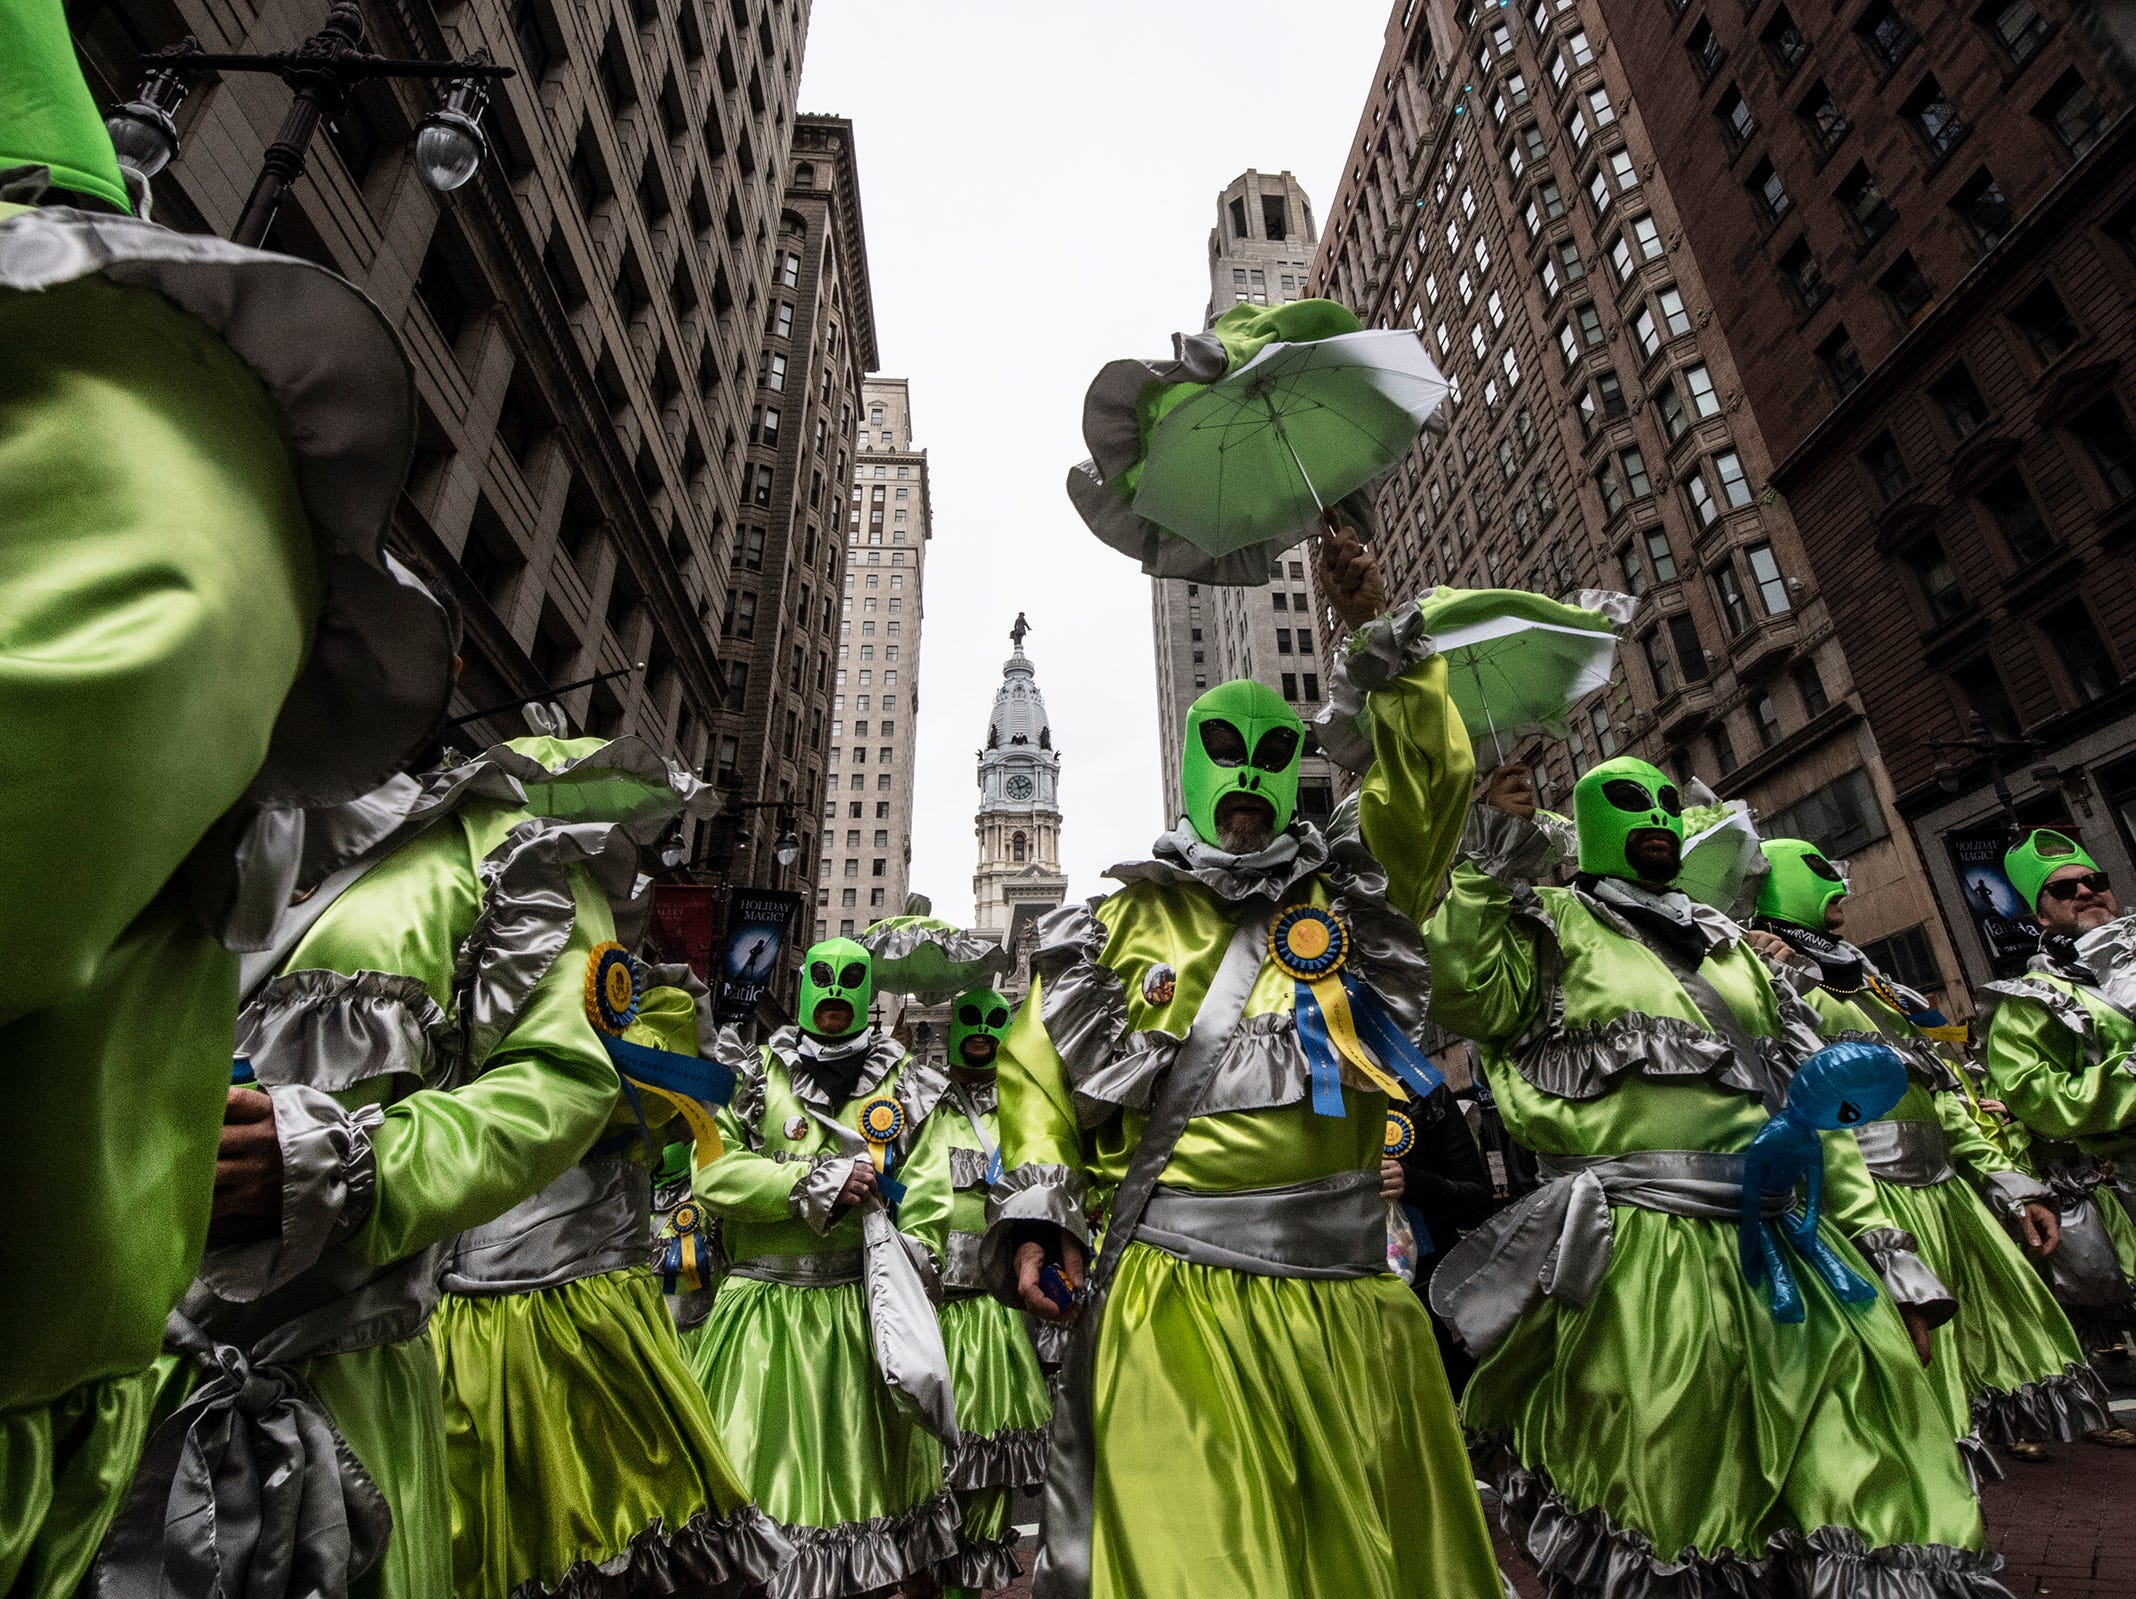 Members of the Murray Comics, the Mollywoppers, struts down Broad Street during the Mummers Parade, Tuesday, Jan. 1, 2019, in Philadelphia. (David Maialetti/The Philadelphia Inquirer via AP)